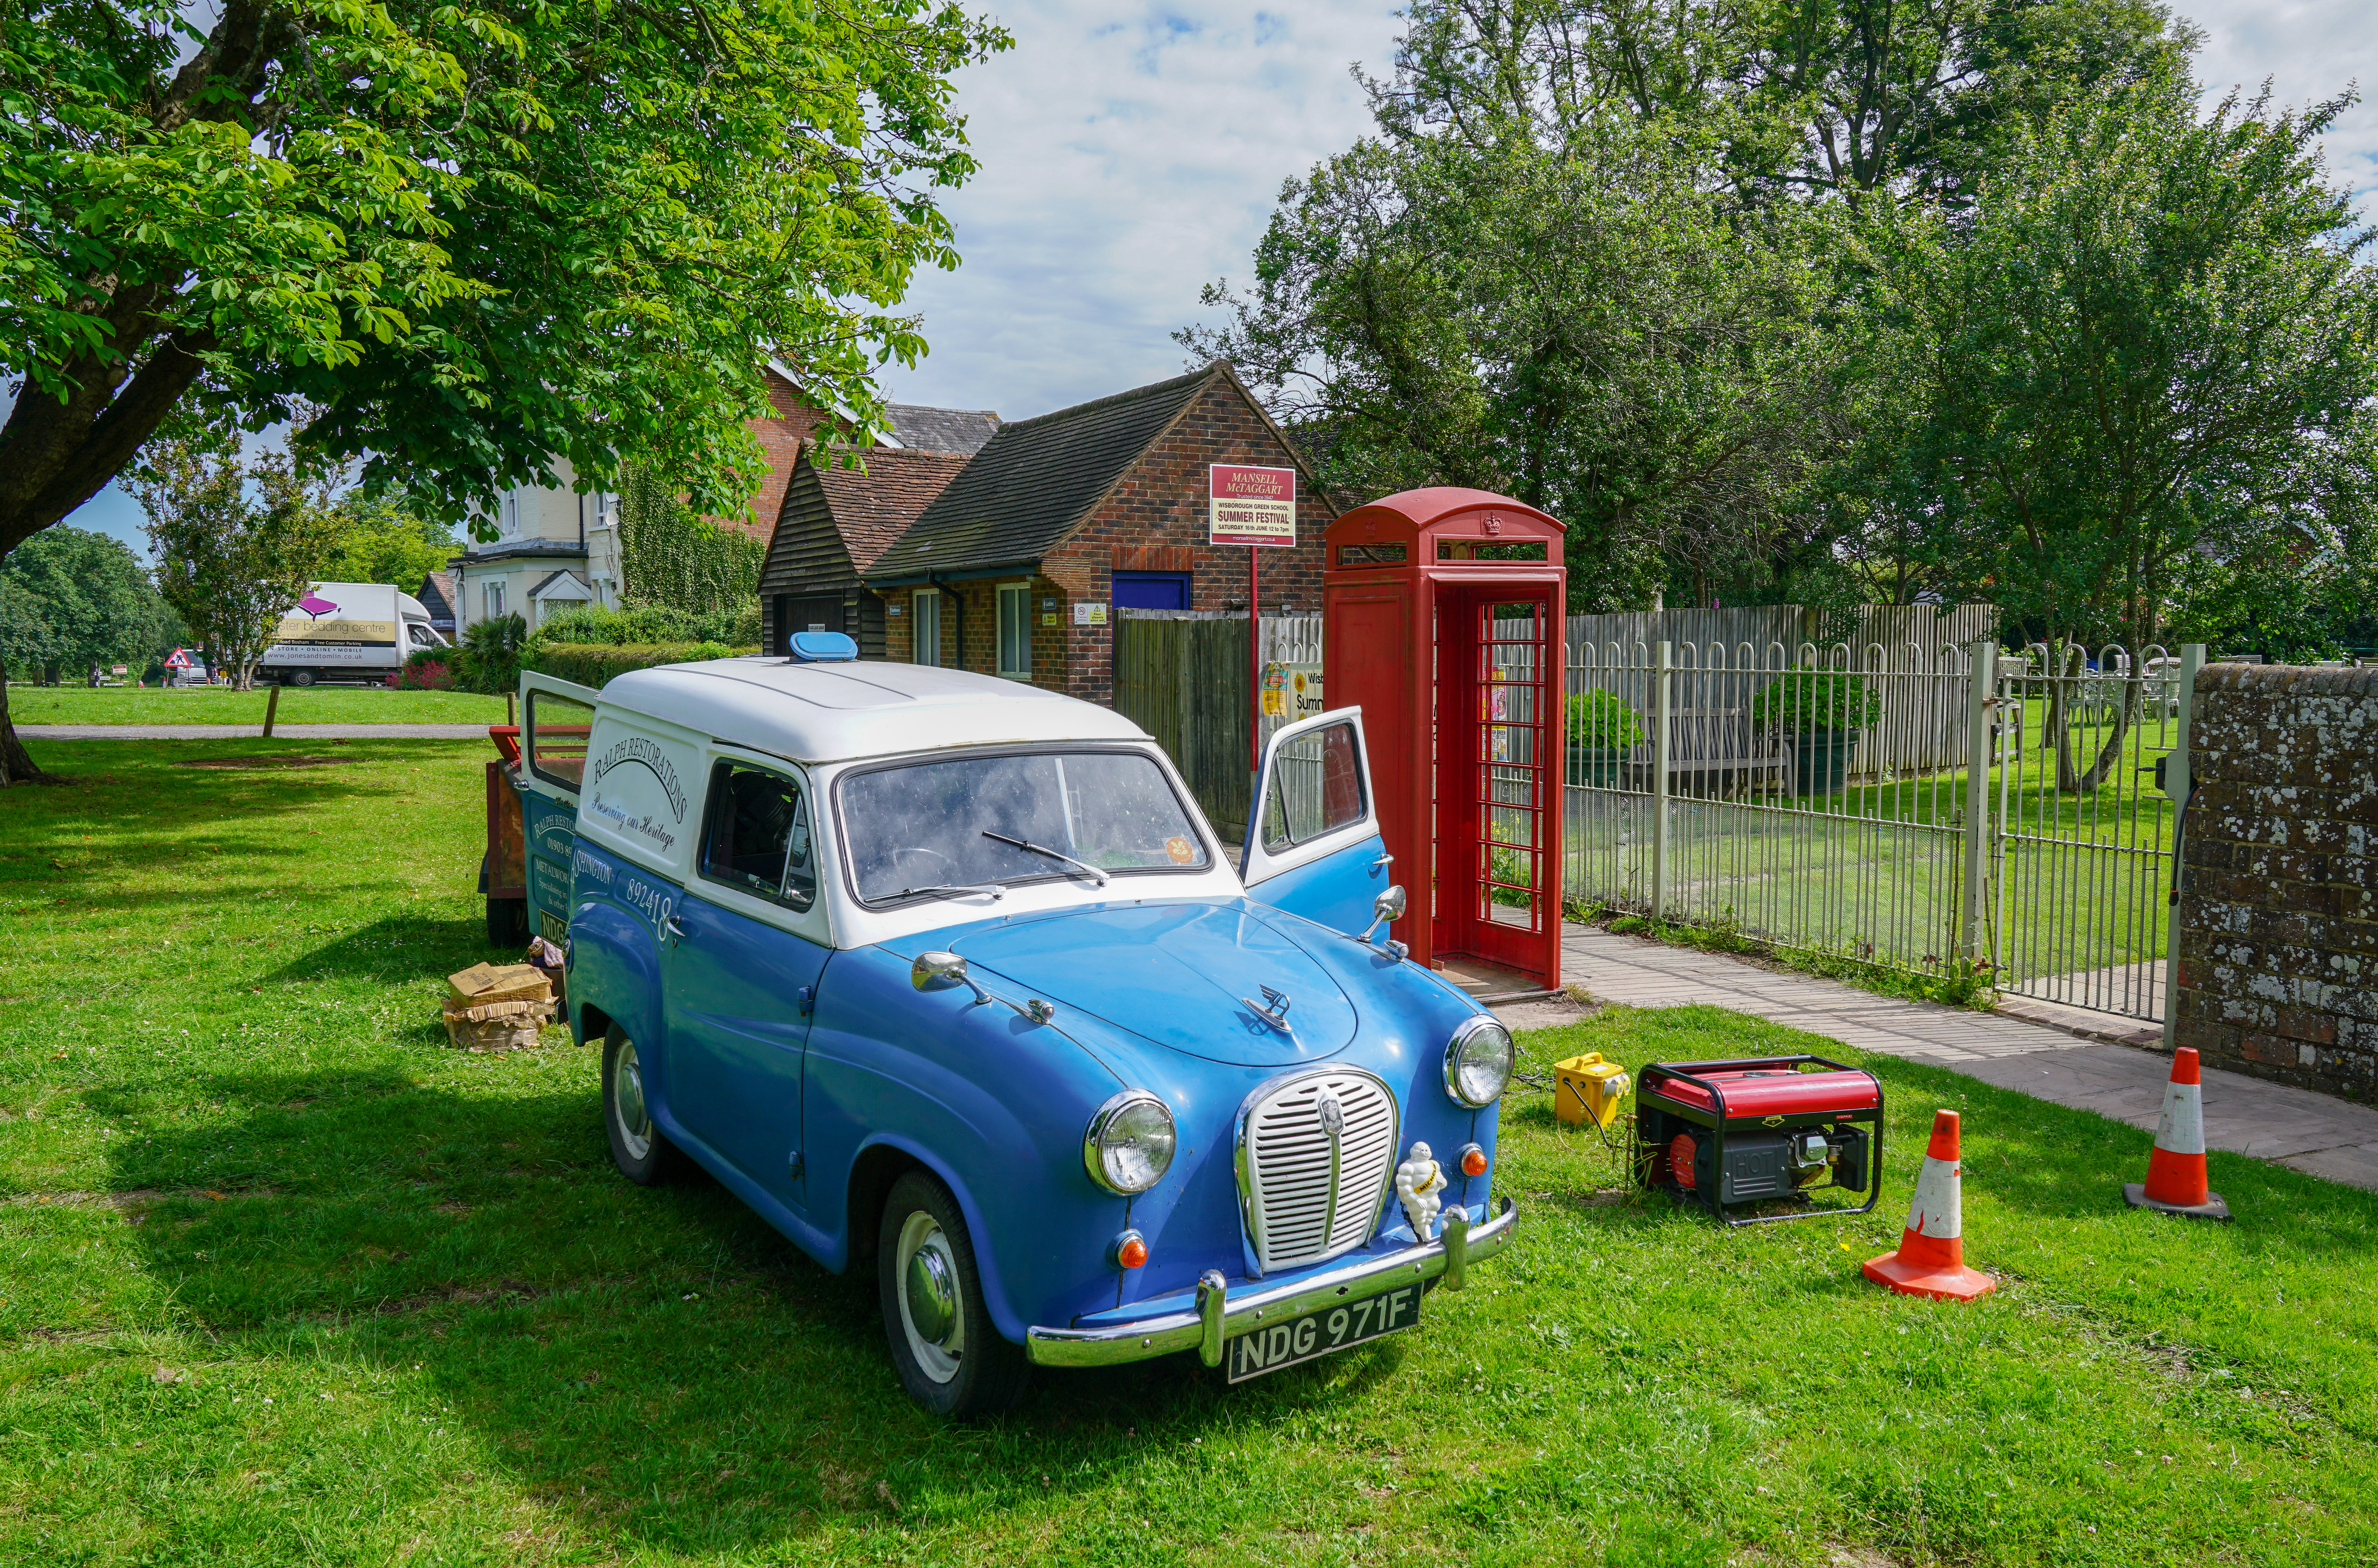 500px Photo ID: 261953523 - Taken on the way through Wisborough Green in West Sussex. The owner of the Van, Ralphs Restorations, was renovating the call box in the background. The vehicle is a 1960's Austin A35